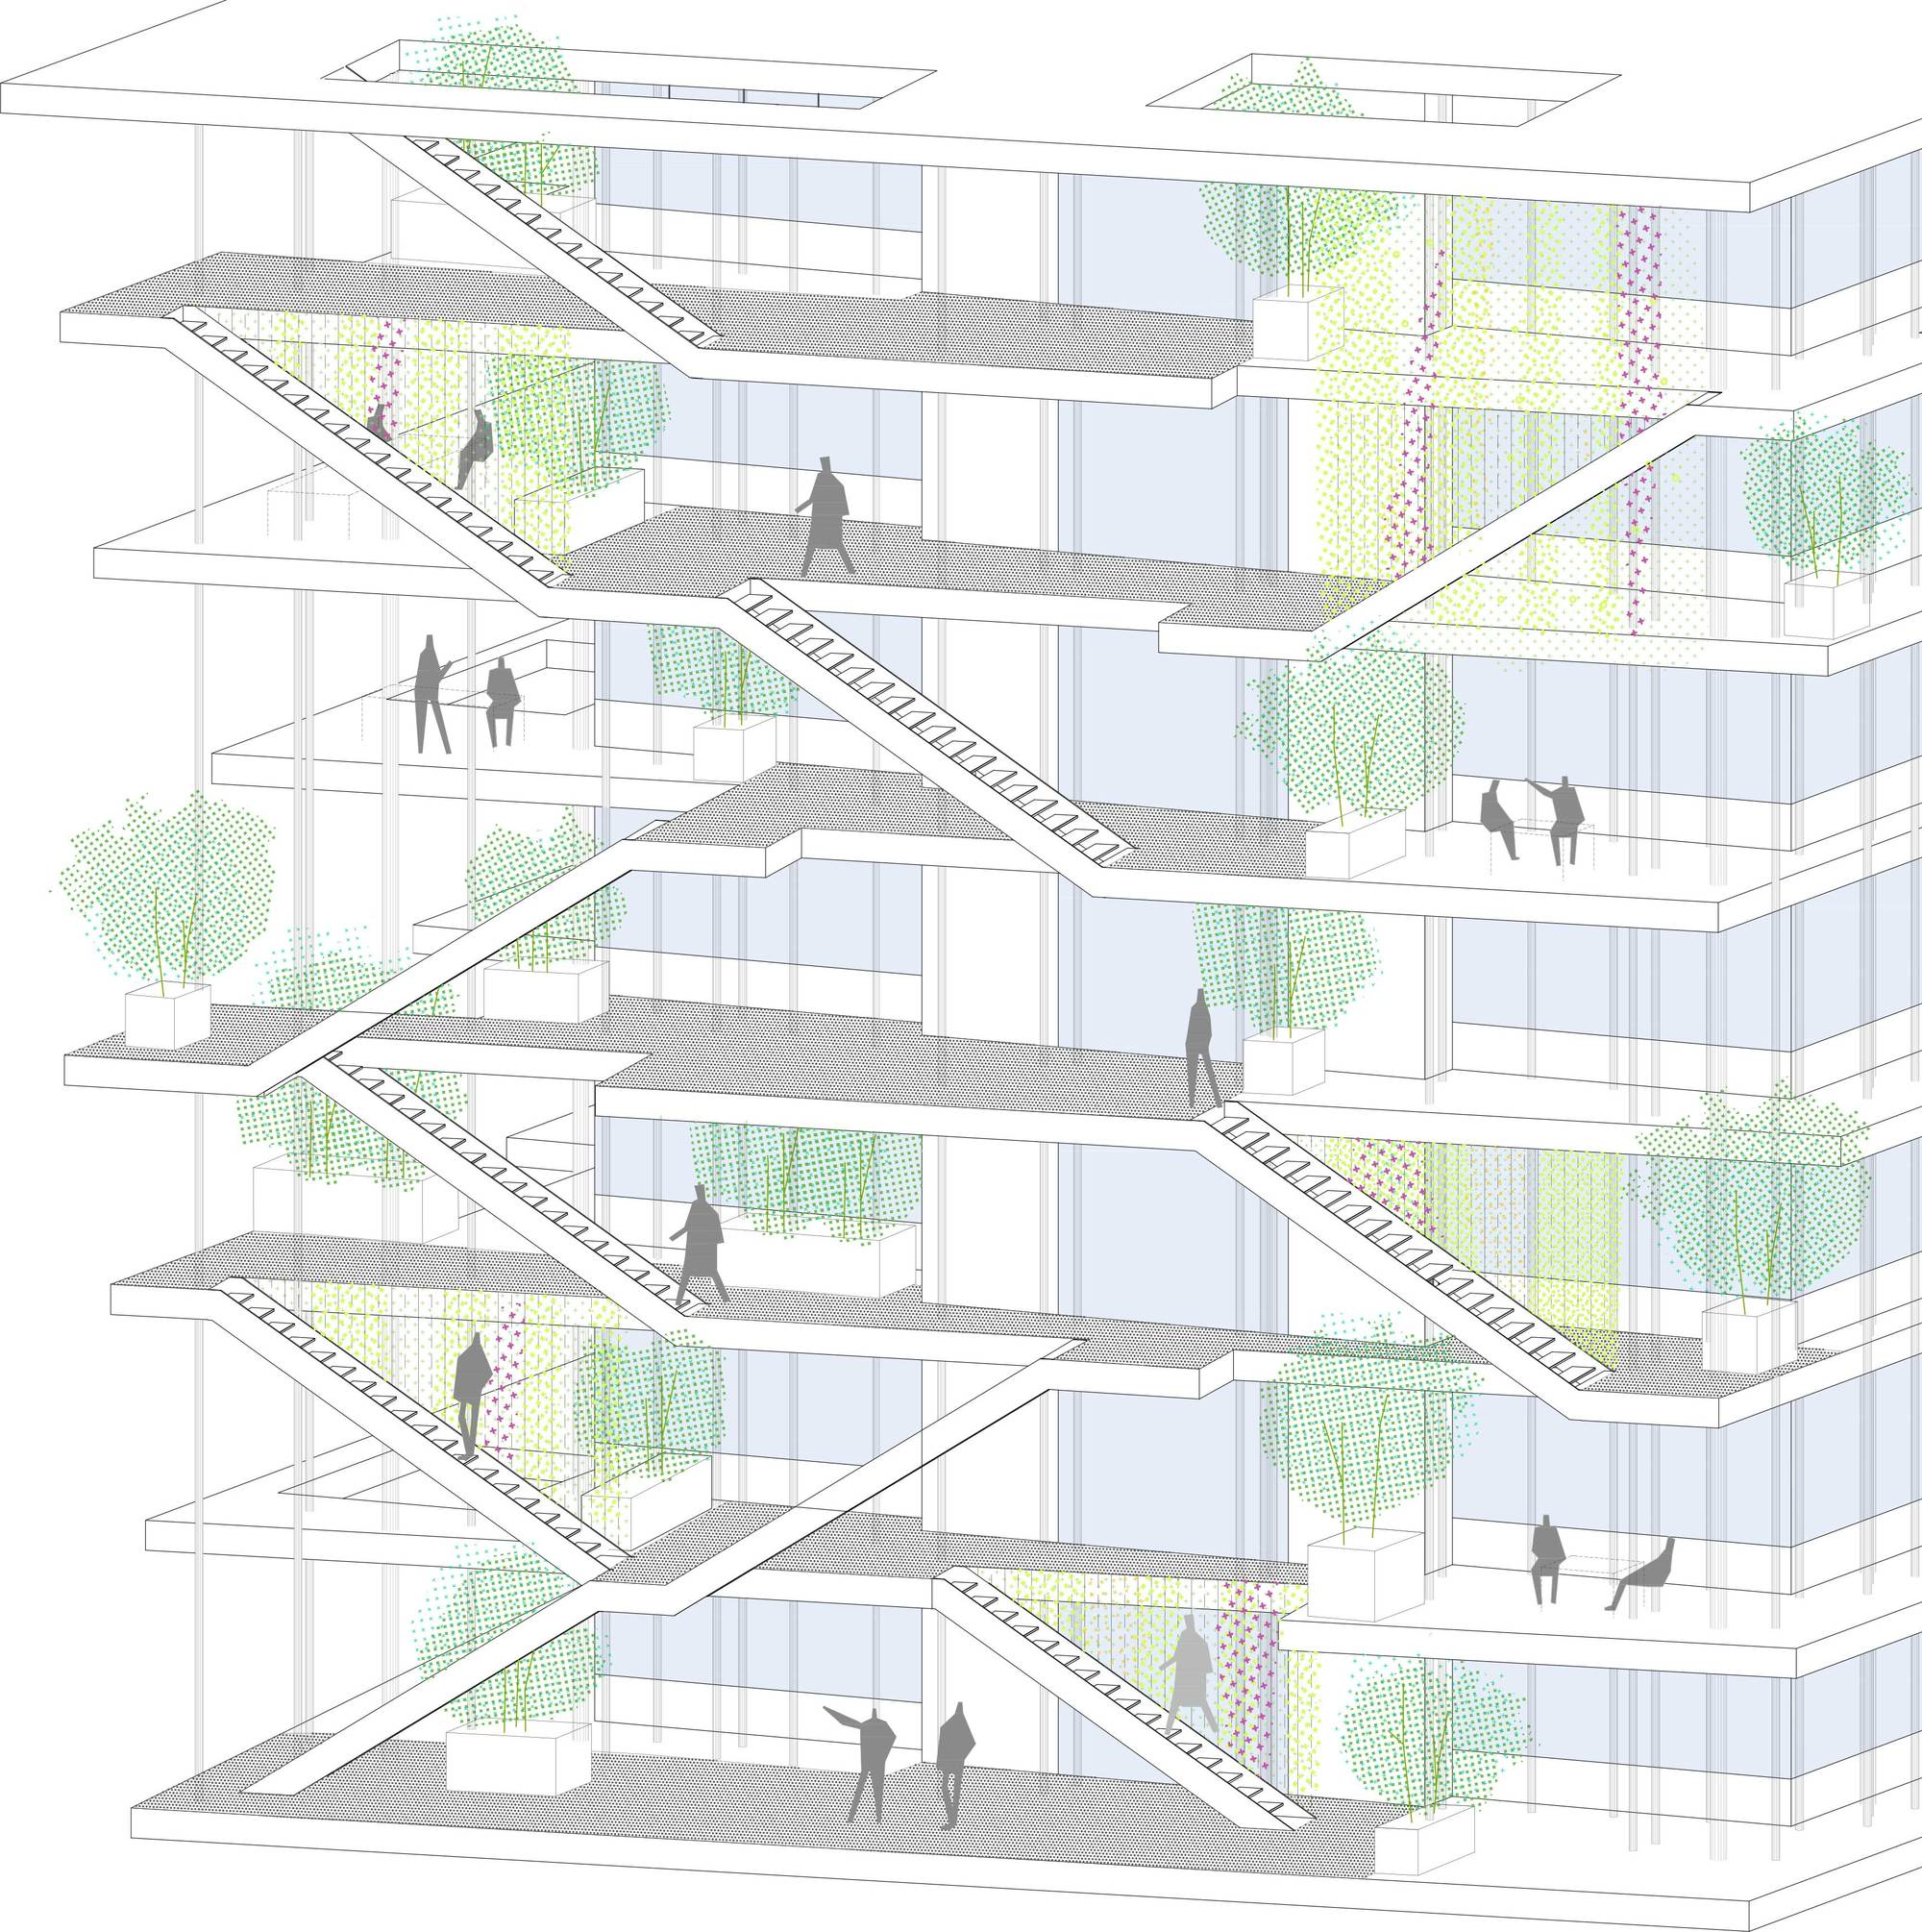 Gallery of nl a reveals plans for open concept green for Building architecture plan